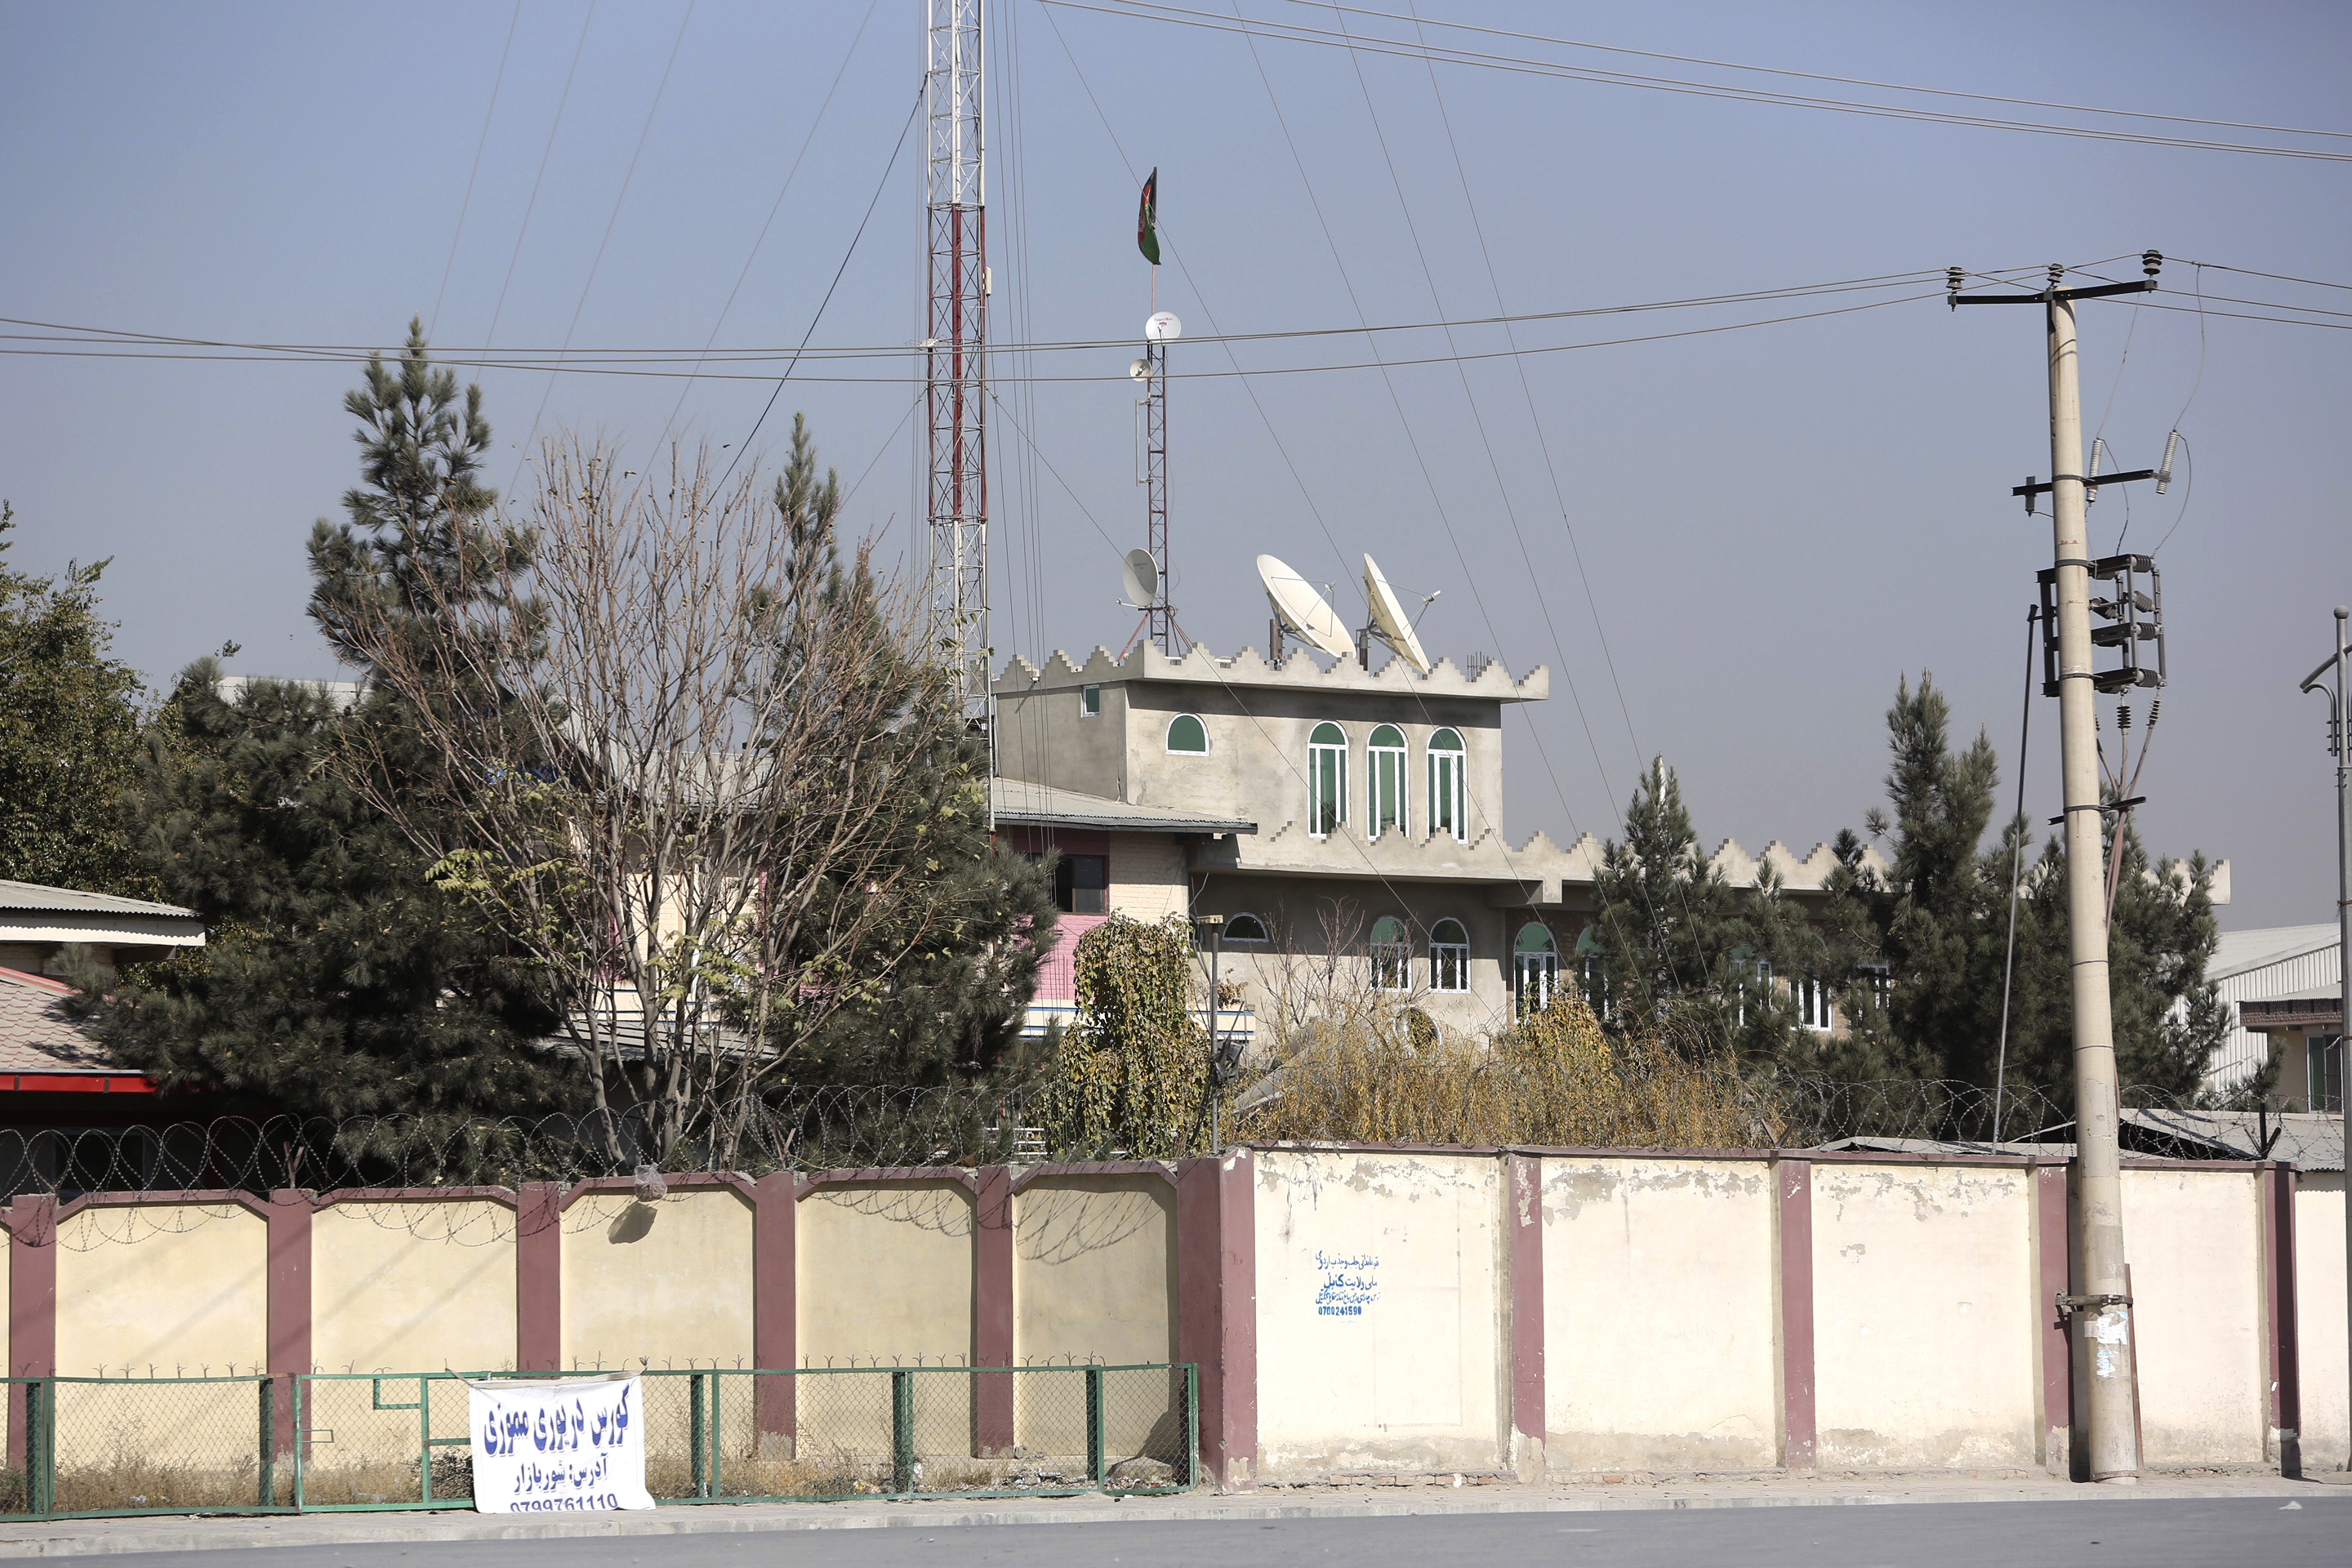 Casualties feared as TV station in Afghan capital comes under attack